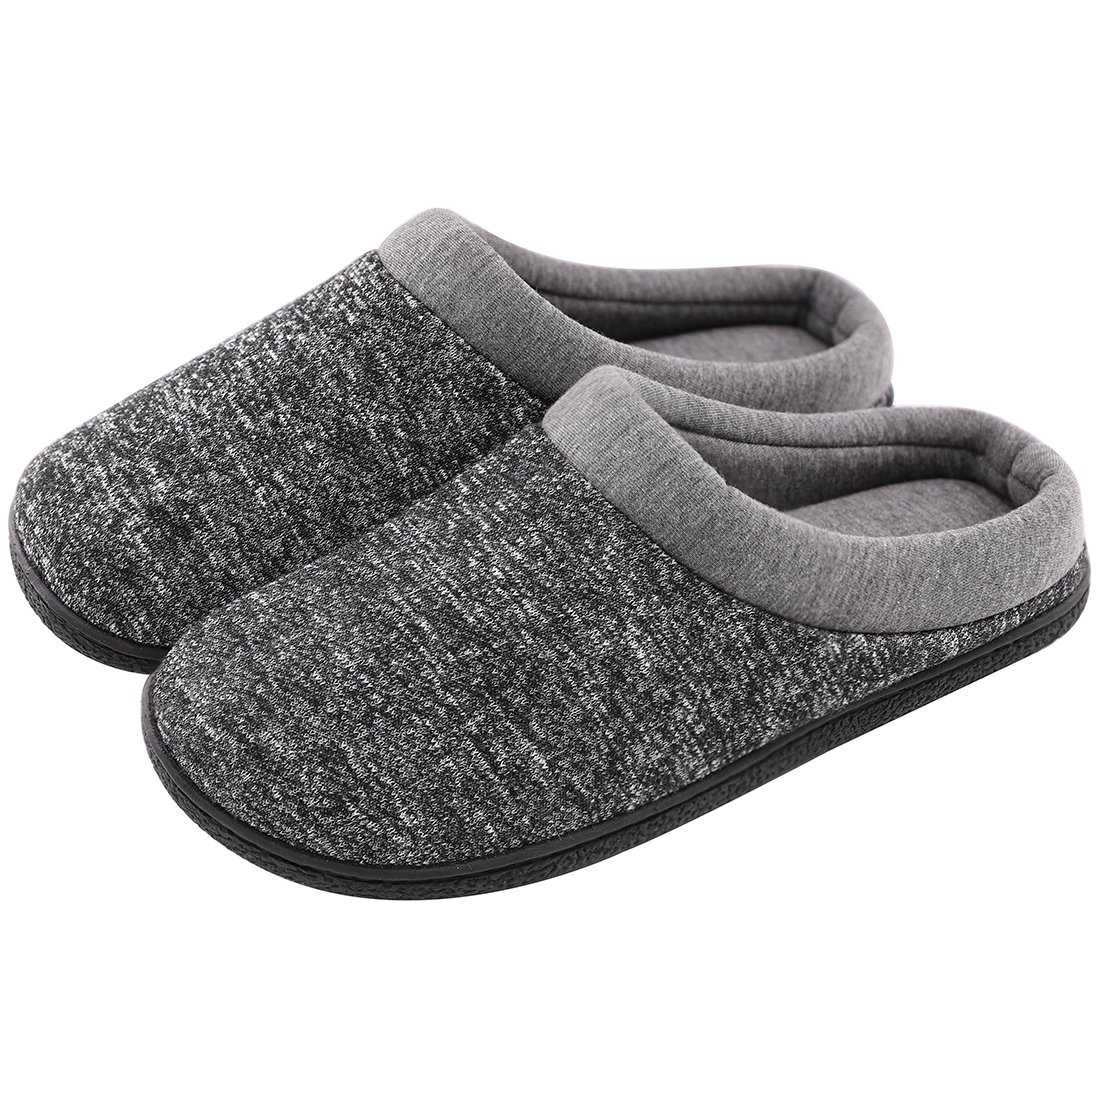 HomeTop Men's Comfort Breathable Moisture-Wicking Spring Summer Slip On Memory Foam House Slippers Shoes Indoor/Outdoor (9-10 D(M) US, Gray)